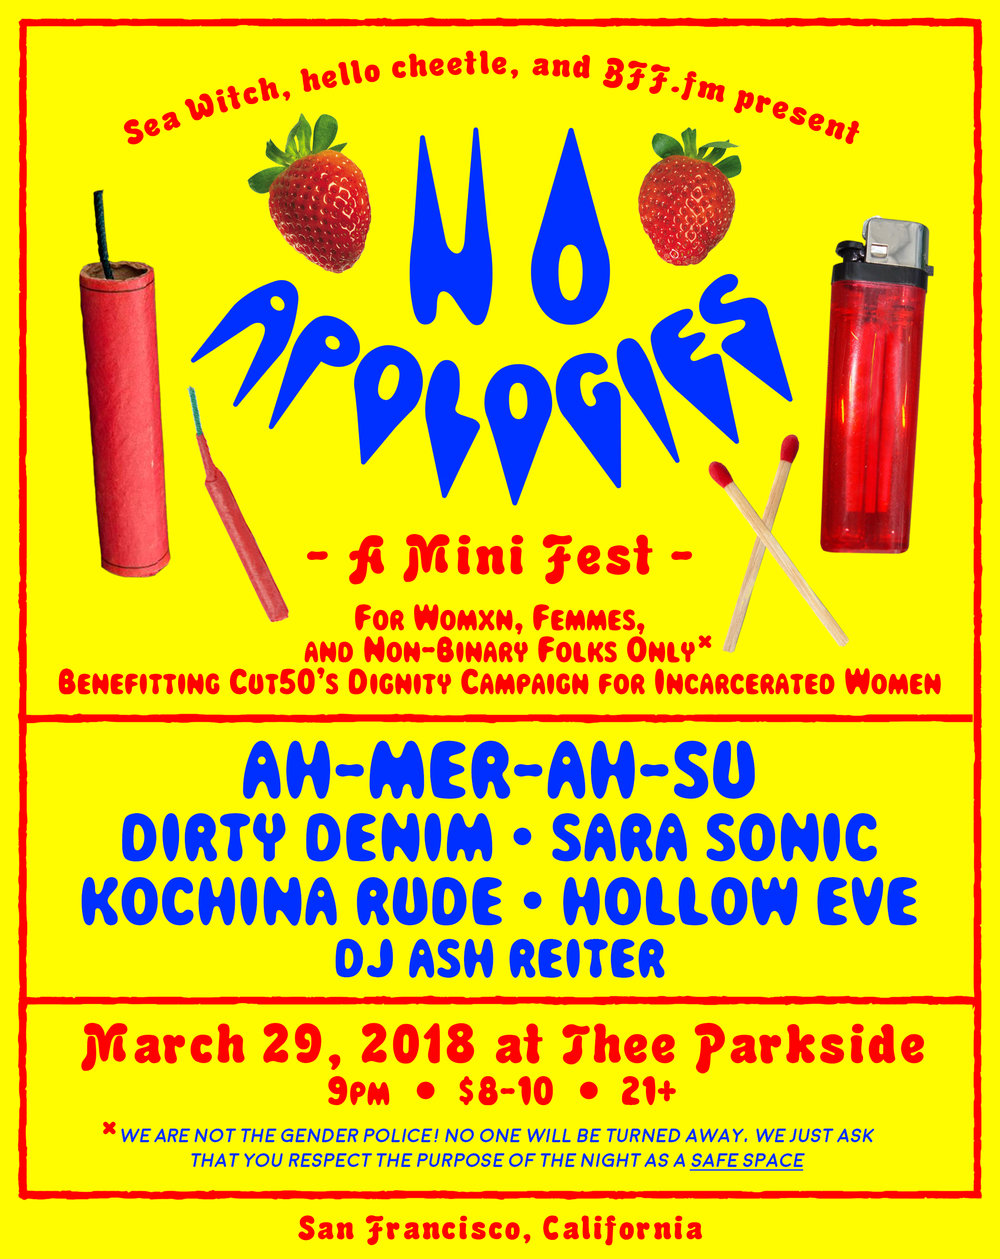 >>tickets -  Introducing No Apologies Fest: For Womxn, Femmes, and Non-Binary Folks Only***!Featuring: Ah-Mer-Ah-Su, Dirty Denim, Sara Sonic, Kochina Rude, Hollow Eve, DJ Ash Reiter and Special Guests TBAMarch 29, 2018 at Thee Parkside$8-10 / 21+ / RSVP HERE